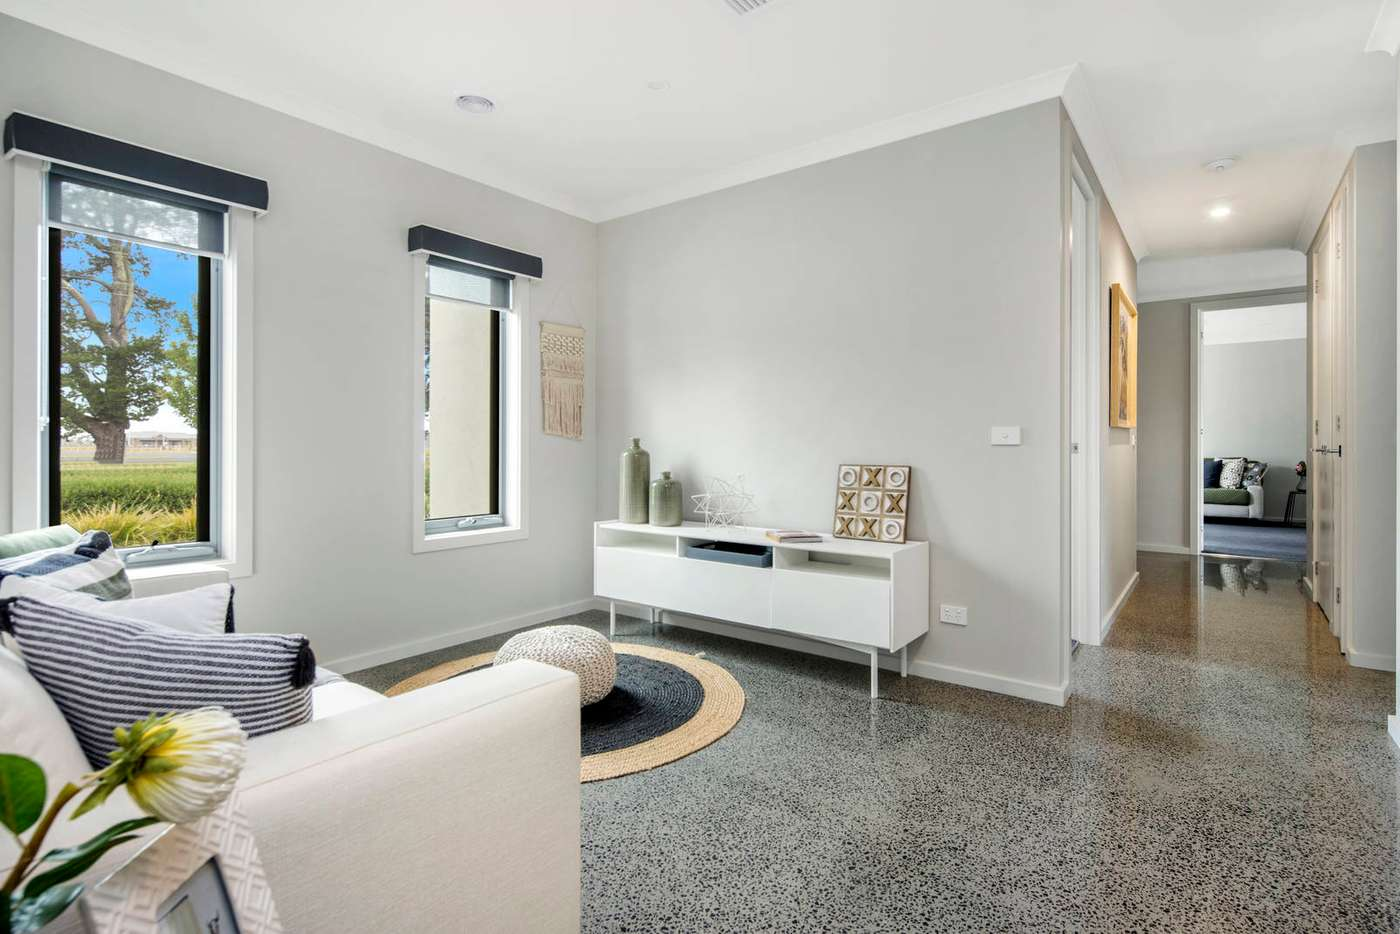 Sixth view of Homely house listing, 2667 Melbourne-Lancefield Road, Romsey VIC 3434